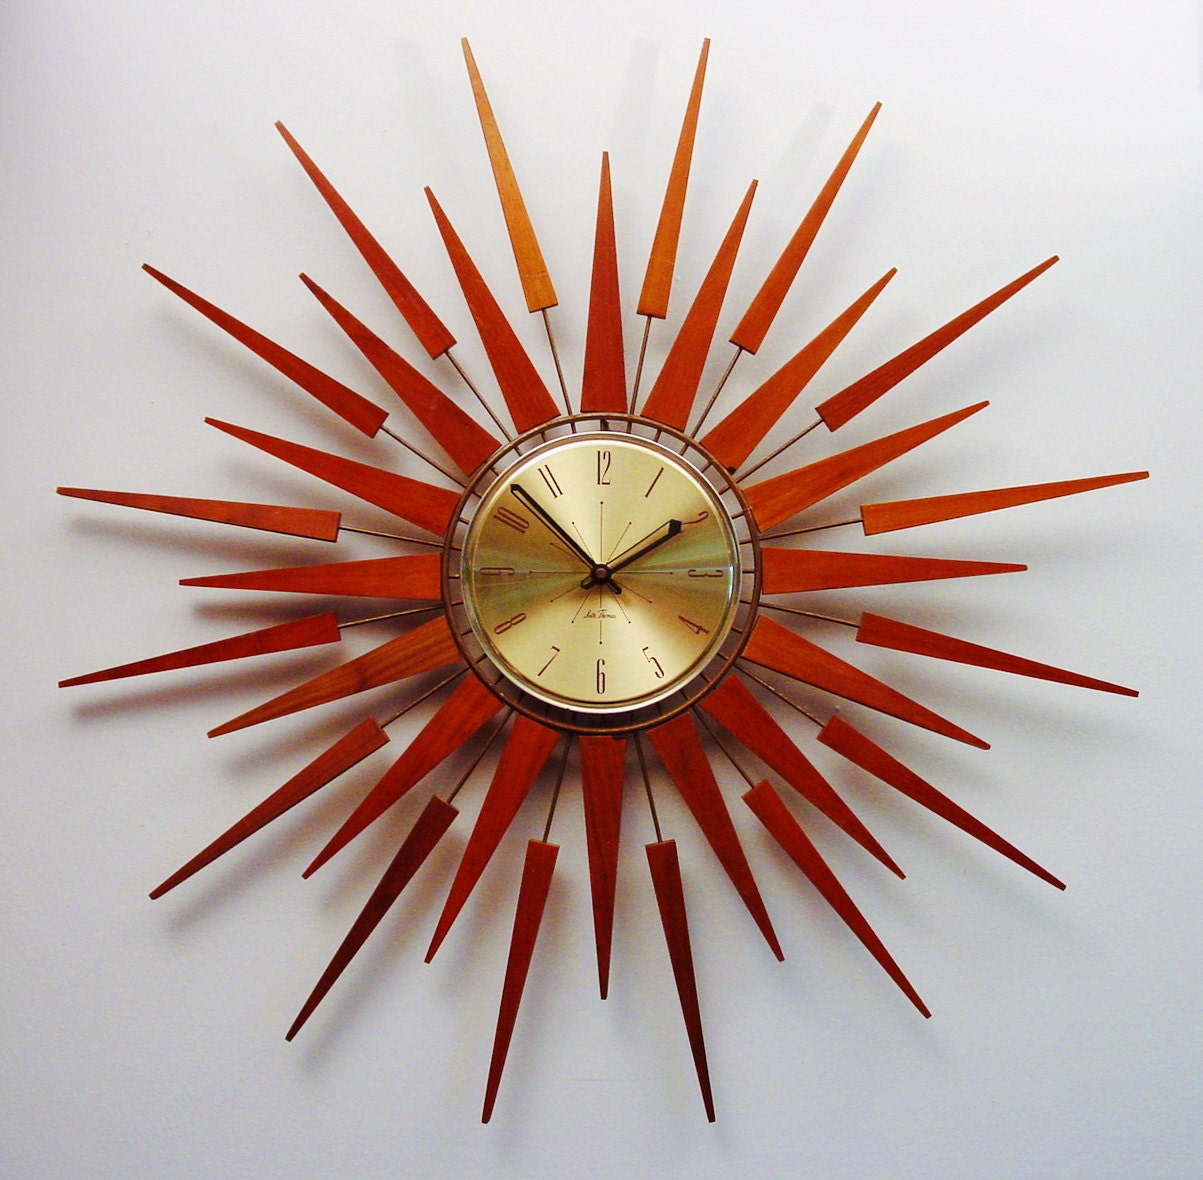 Wall Decor Clocks Modern : Mid century modern starburst wall clock by seth thomas